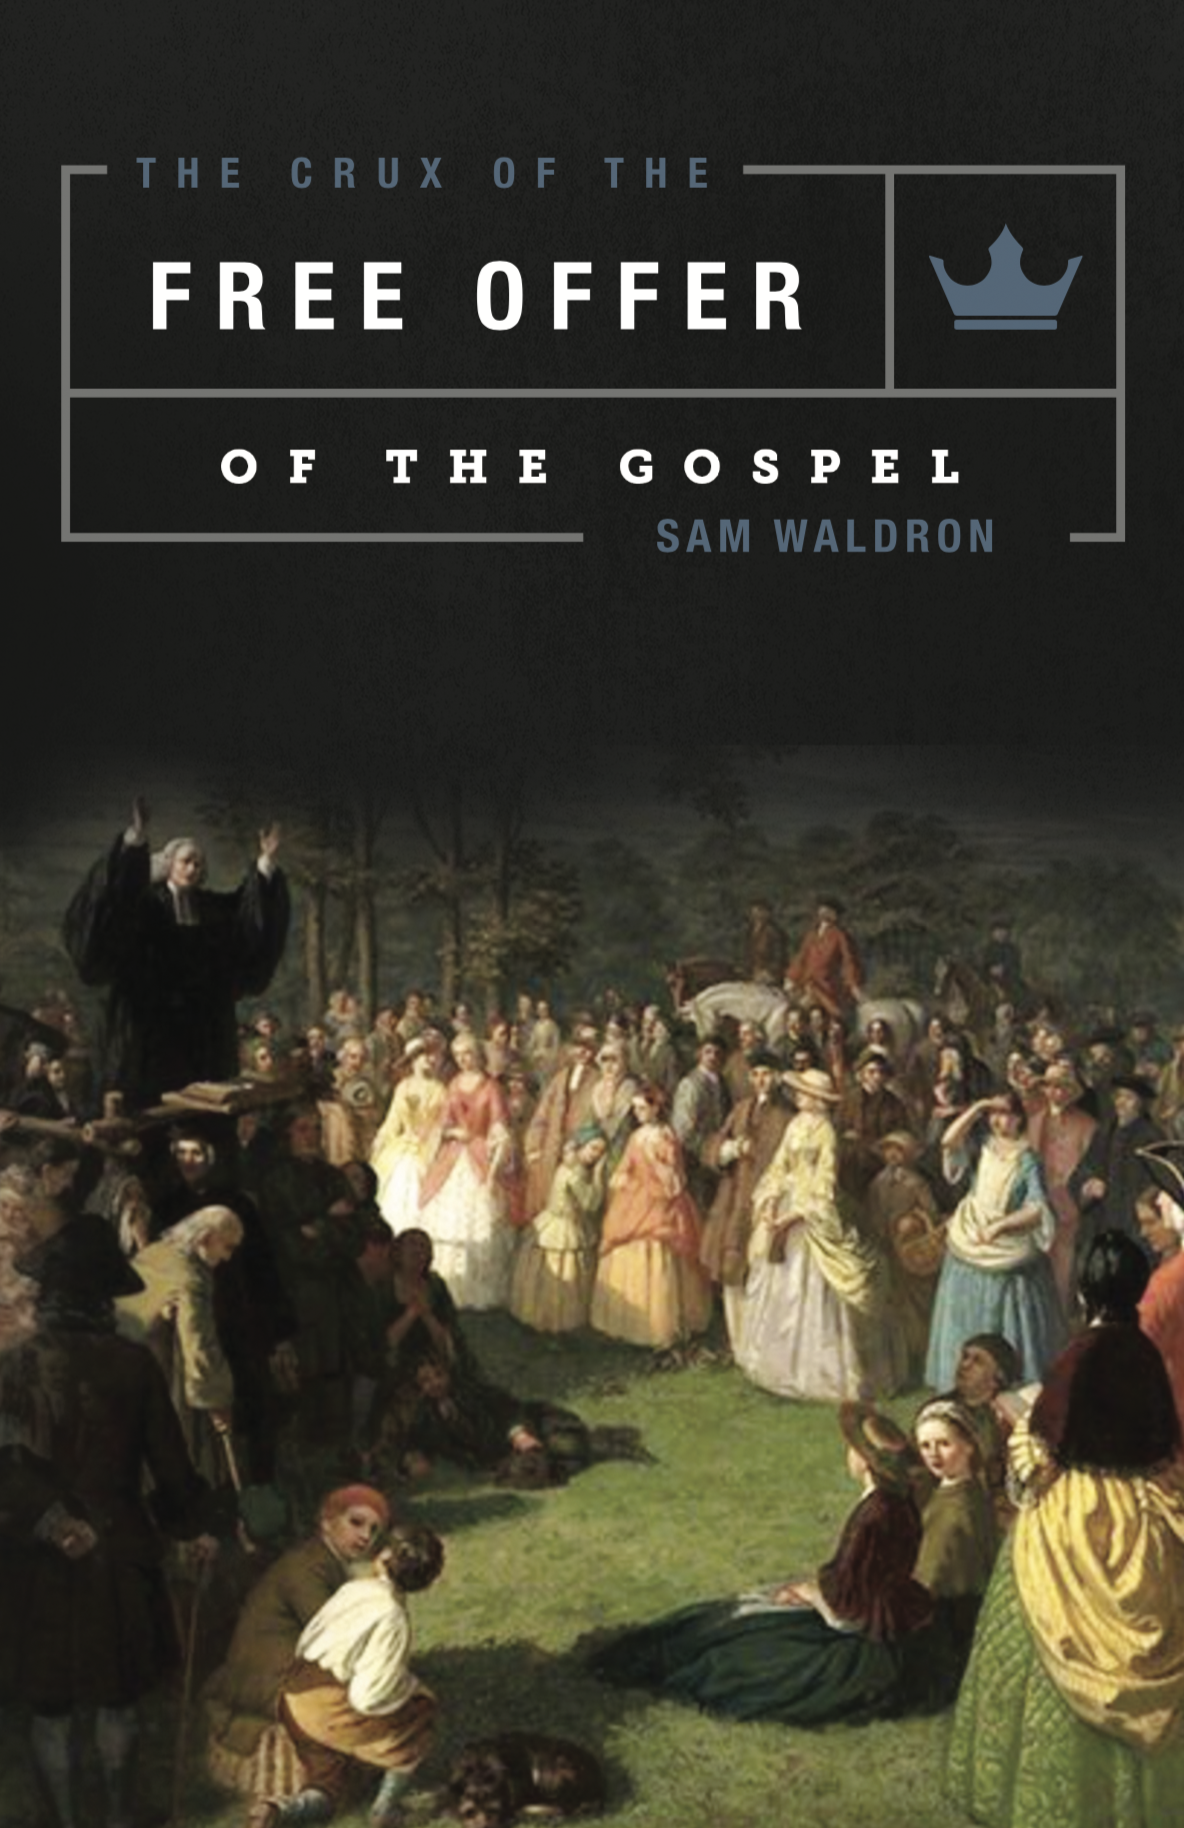 "- ""I am once again indebted to Sam Waldron for his precise exposition of the Scriptures regarding this critical issue facing the church. As always, he stands upon the Word of God an din the very center of the historical Reformed faith. This work not only substantiates the free offer of the gospel to all, but it will inspire the reader to be more diligent in the gospel ministry."" —Paul Washer""Can a Christian rightly say that God sovereignly determines whom He will save and sincerely offers. Christ to everyone who hears the gospel? Sam Waldron gives us a solid basis to say 'Yes'! His outline of sophisticated theological arguments makes constant reference to the Holy Scriptures to embolden preachers to preach unconditional election, particular redemption, and the free offer of the gospel."" —Joel BeekeOur Price: 14.00"